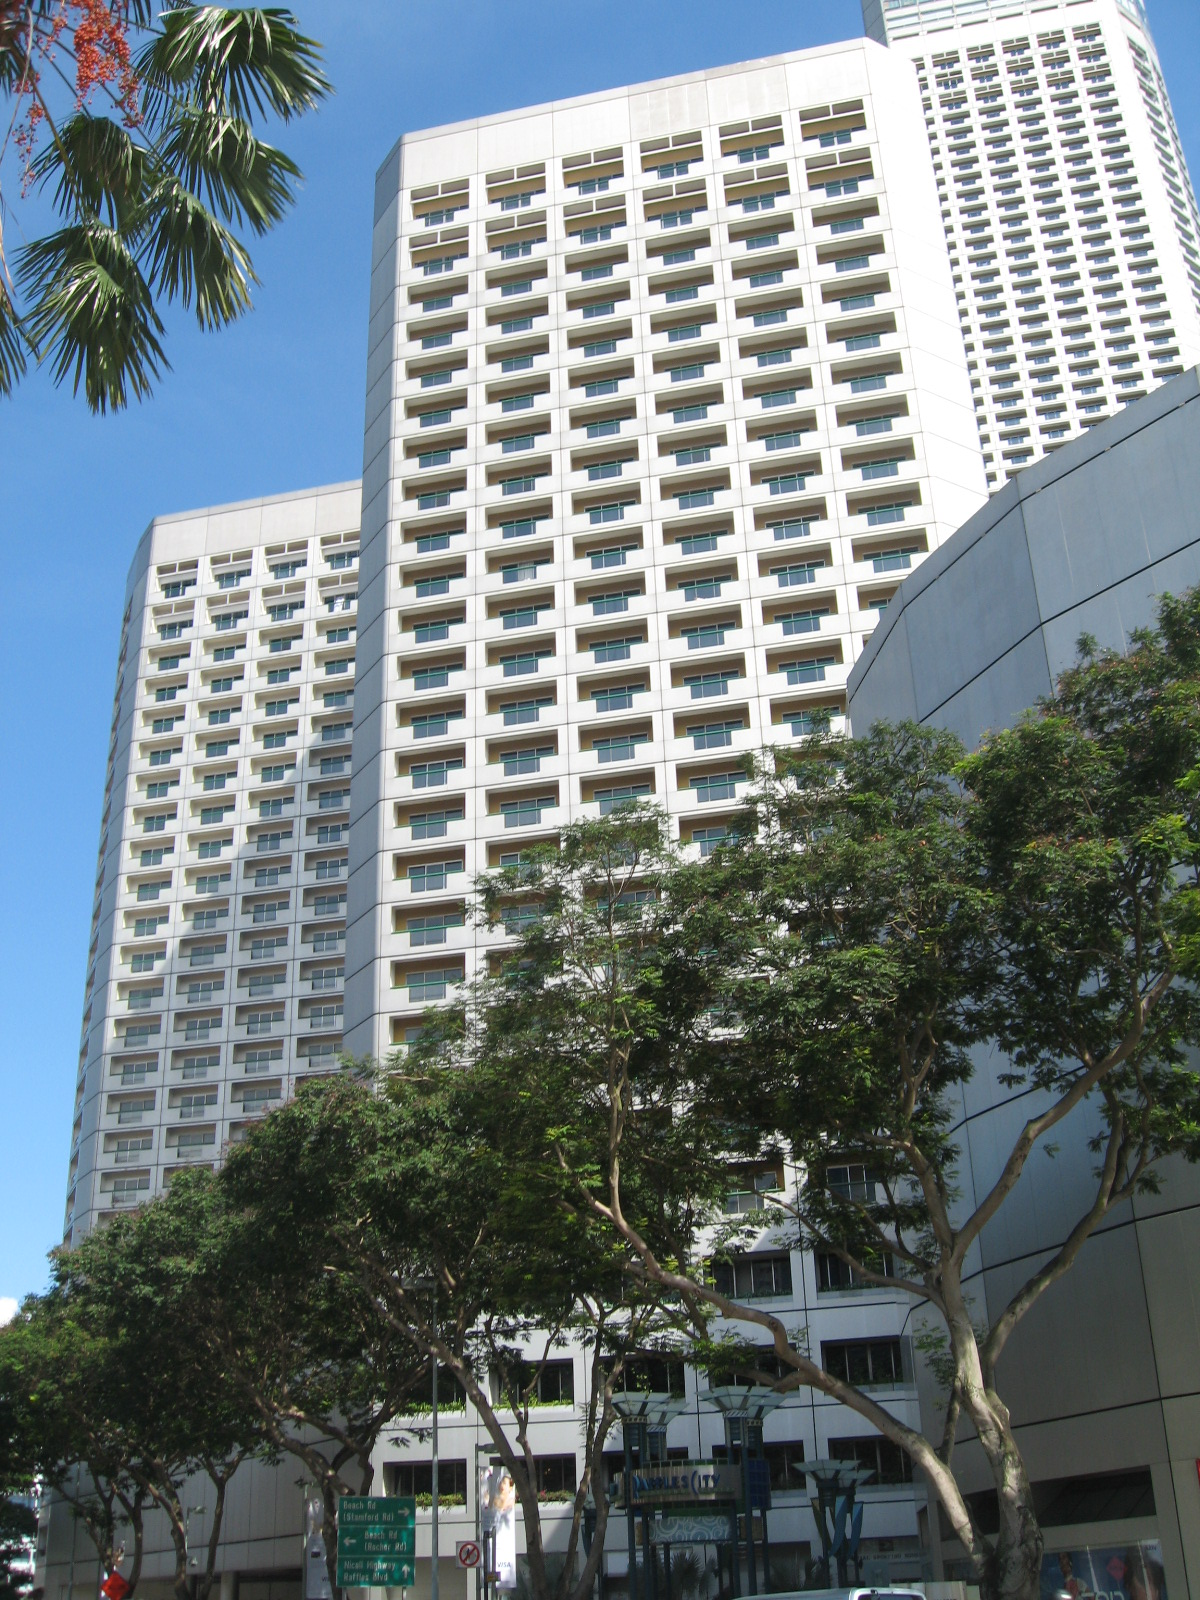 Hotels In Boston >> Fairmont Singapore - Wikipedia